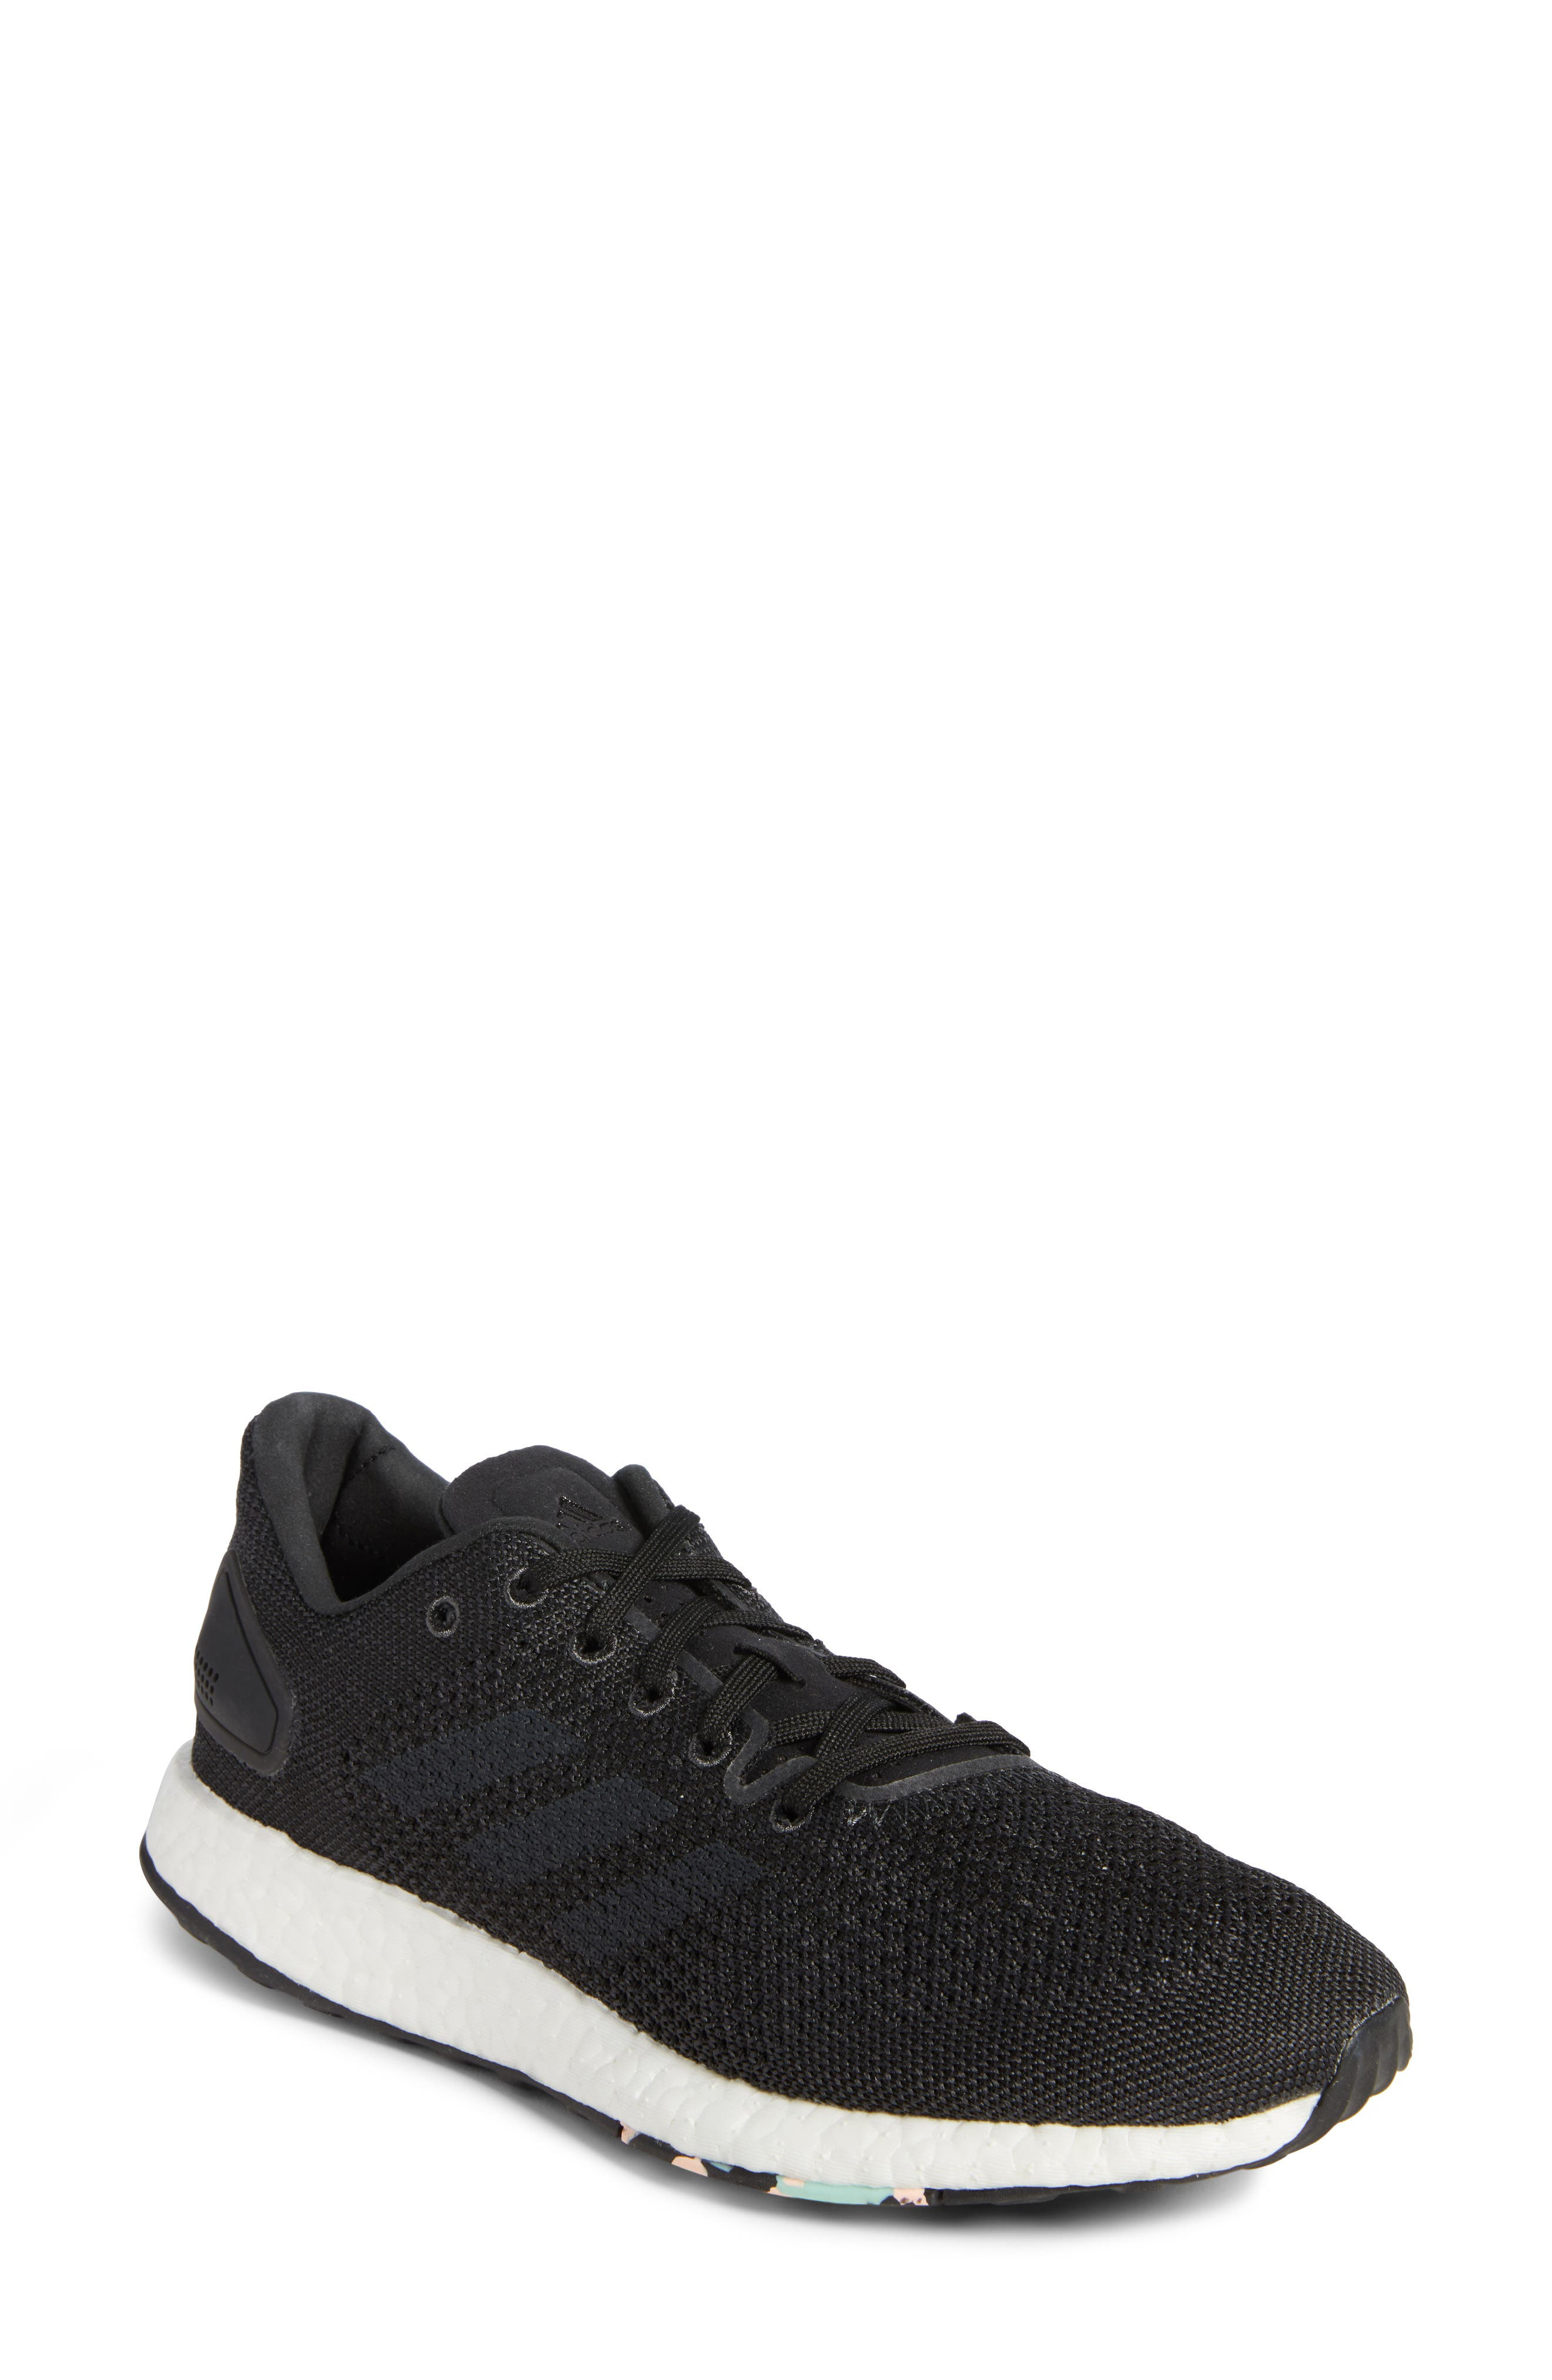 PureBoost DPR Running Shoe,                             Main thumbnail 4, color,